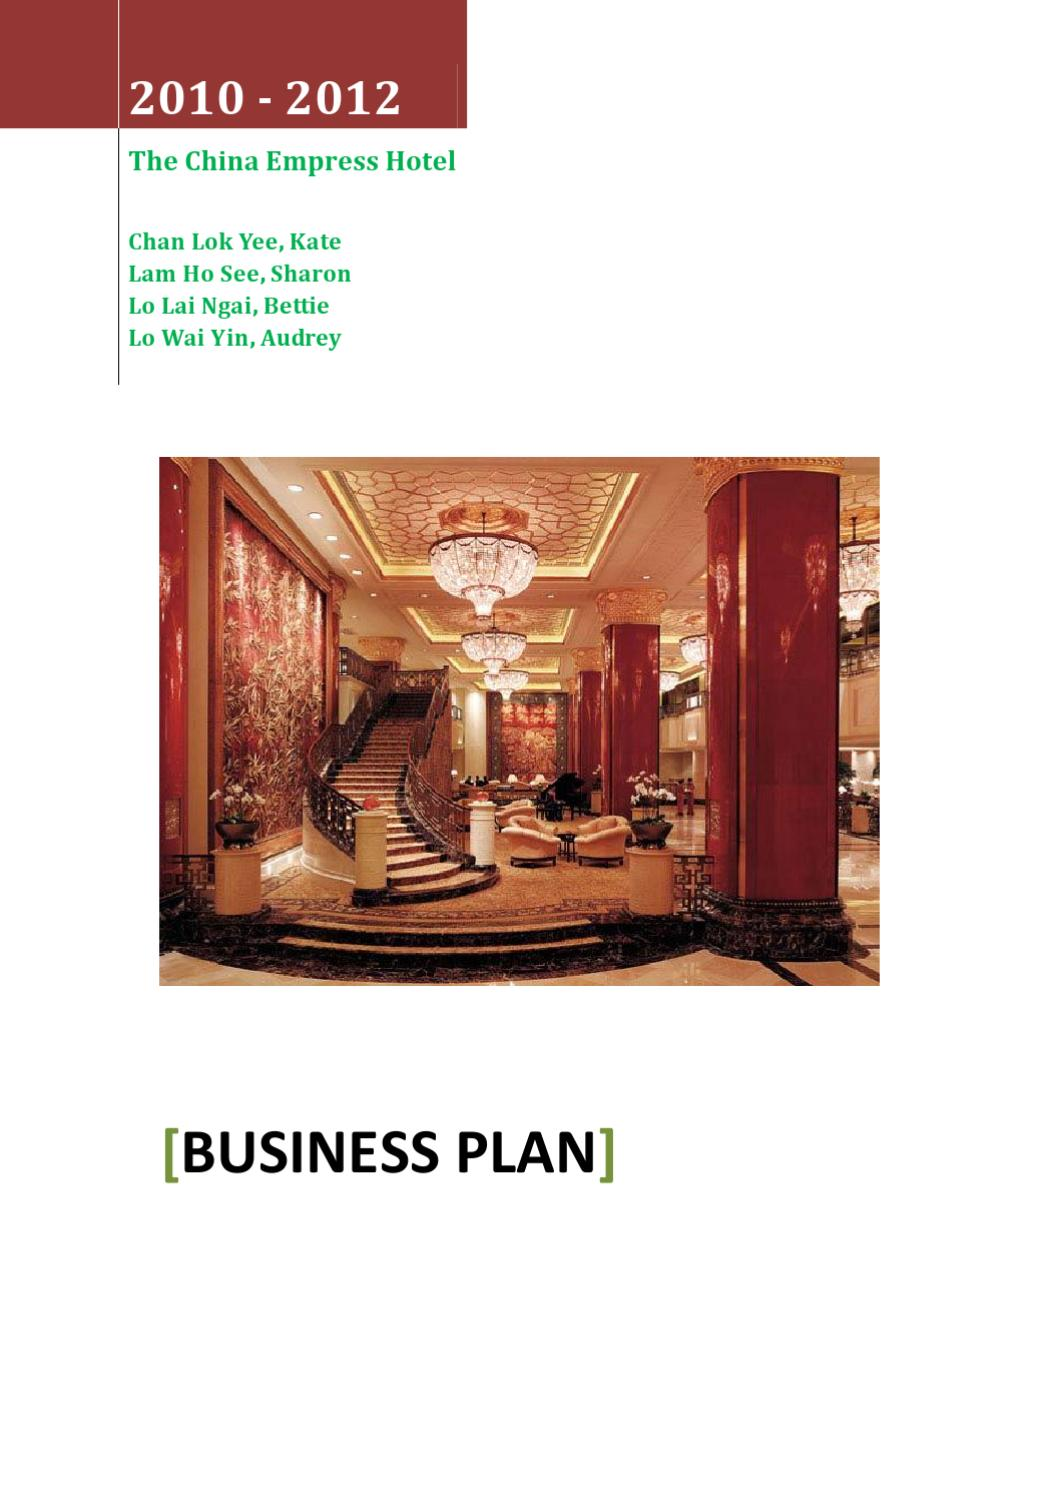 Business plan for a boutique hotel